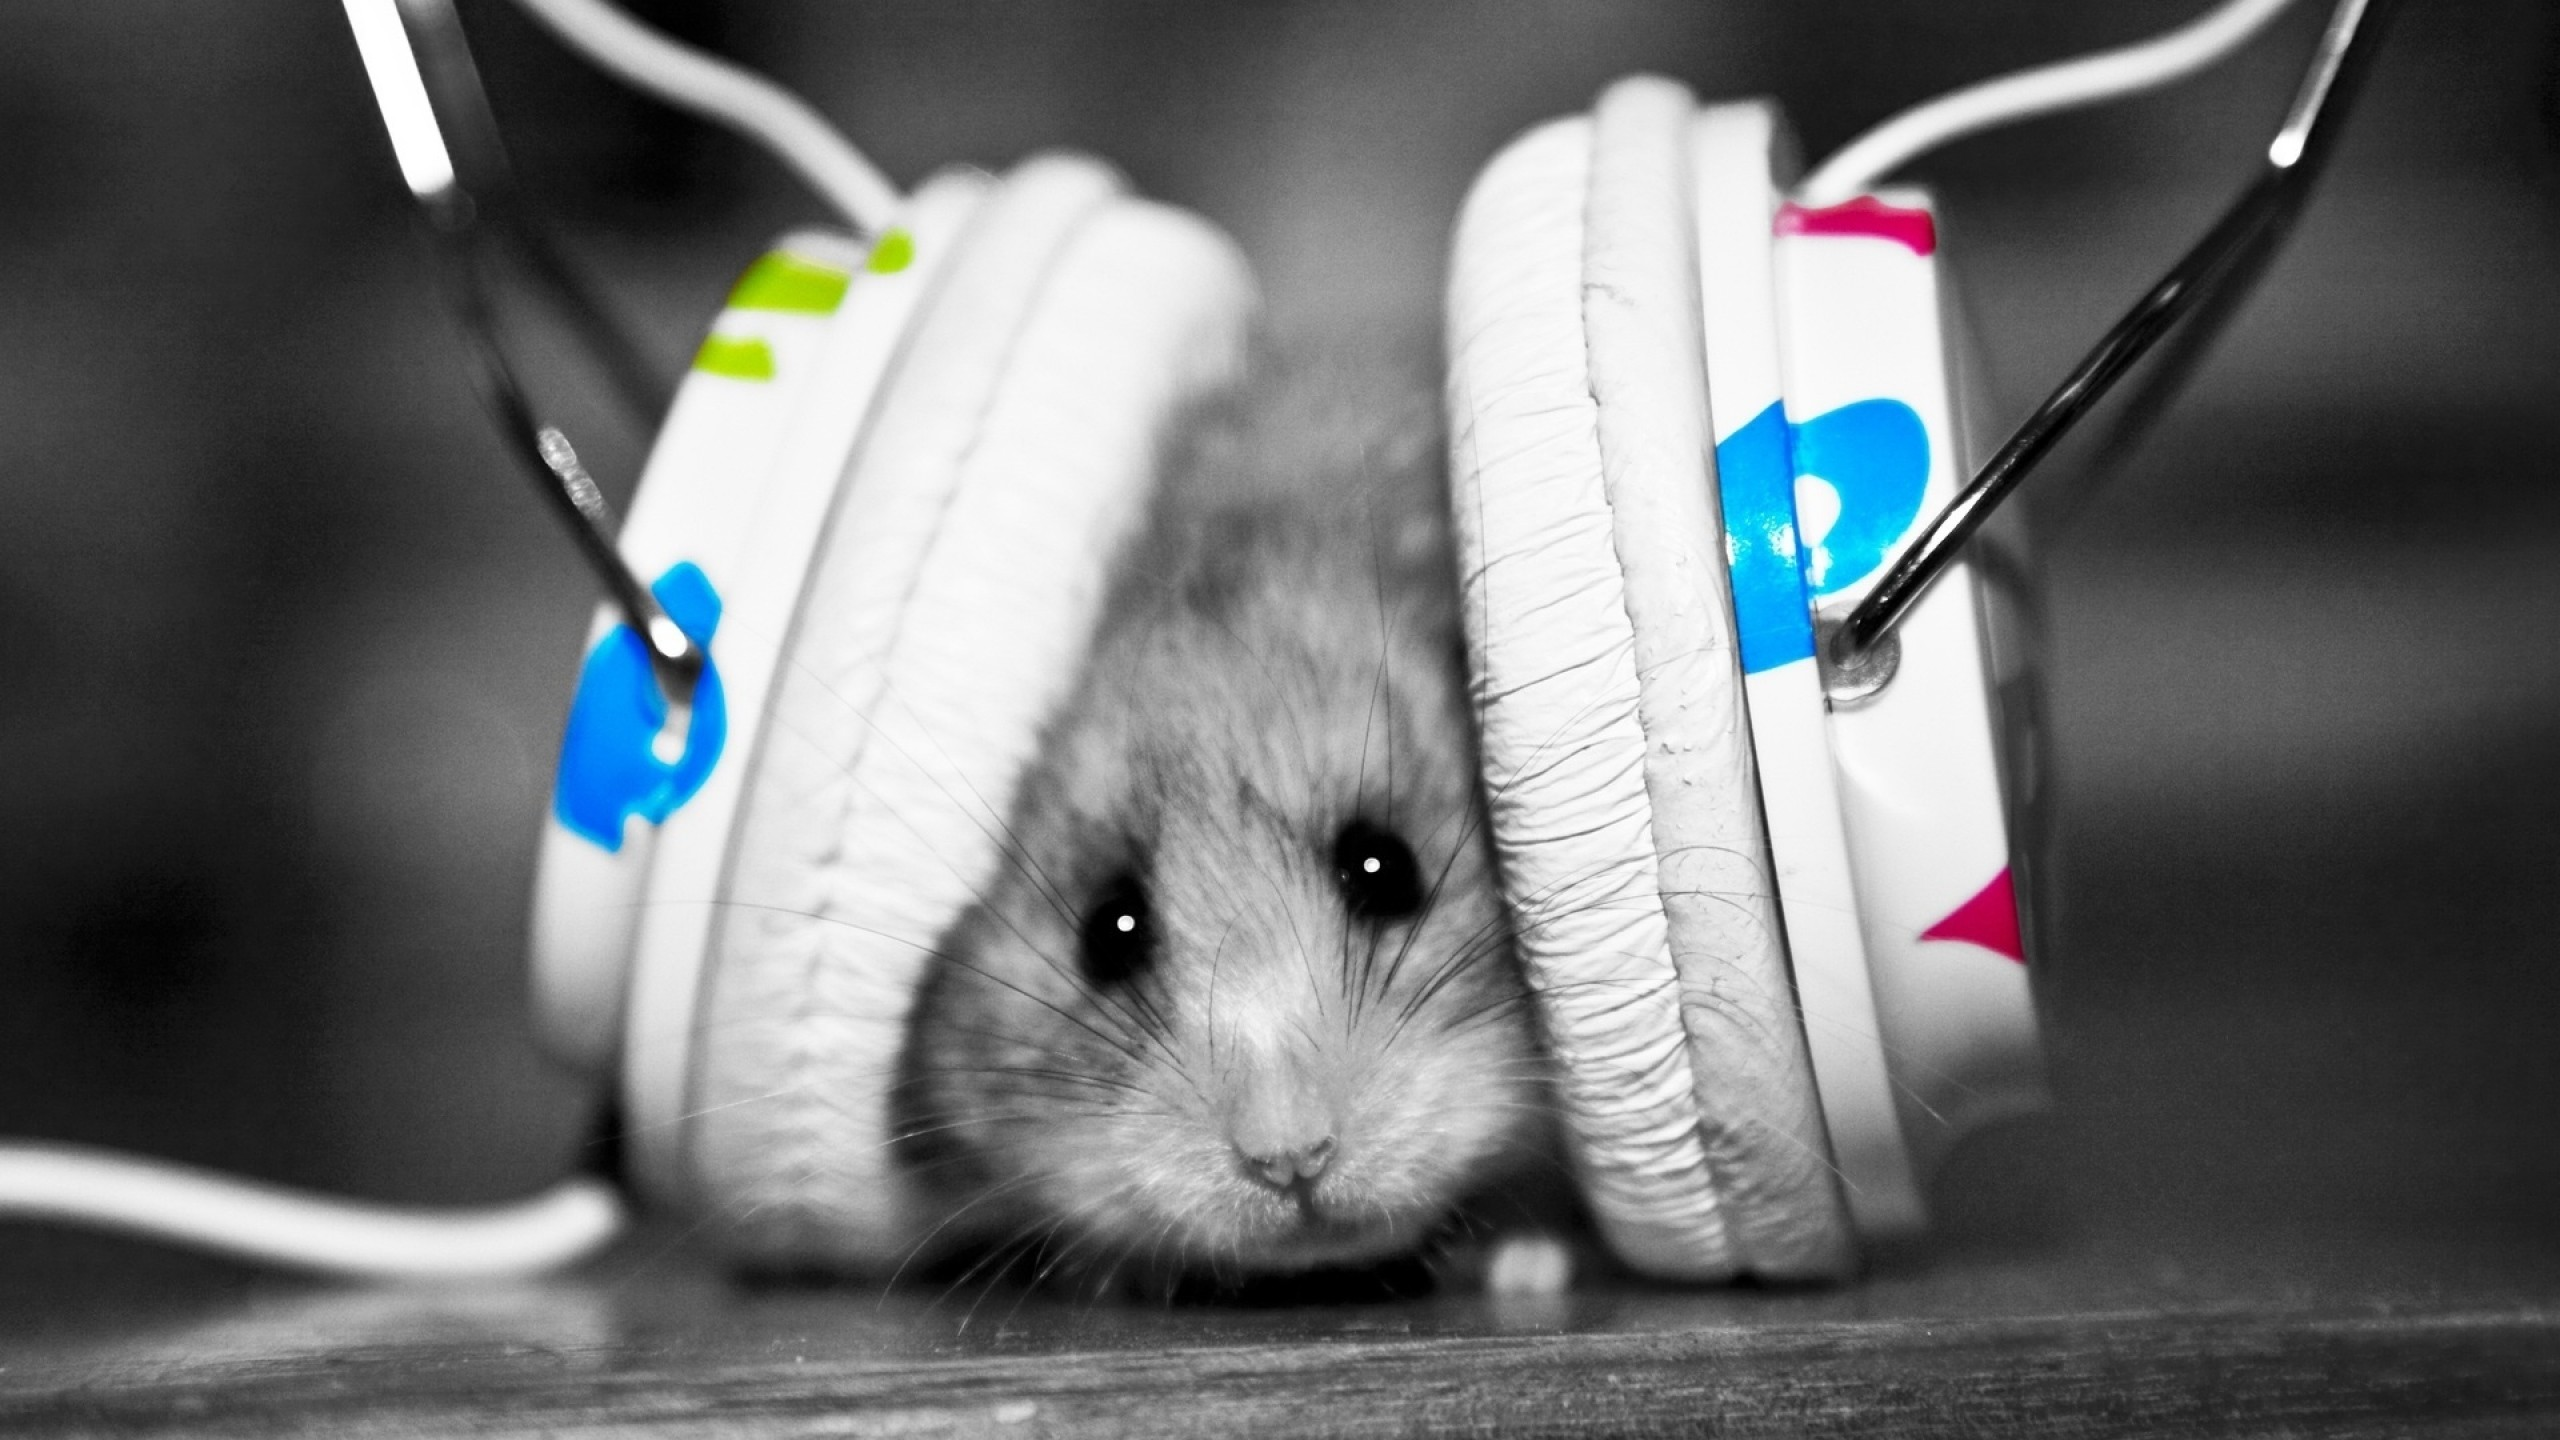 2560x1440 Preview wallpaper funny, music fan, music, little, hamster